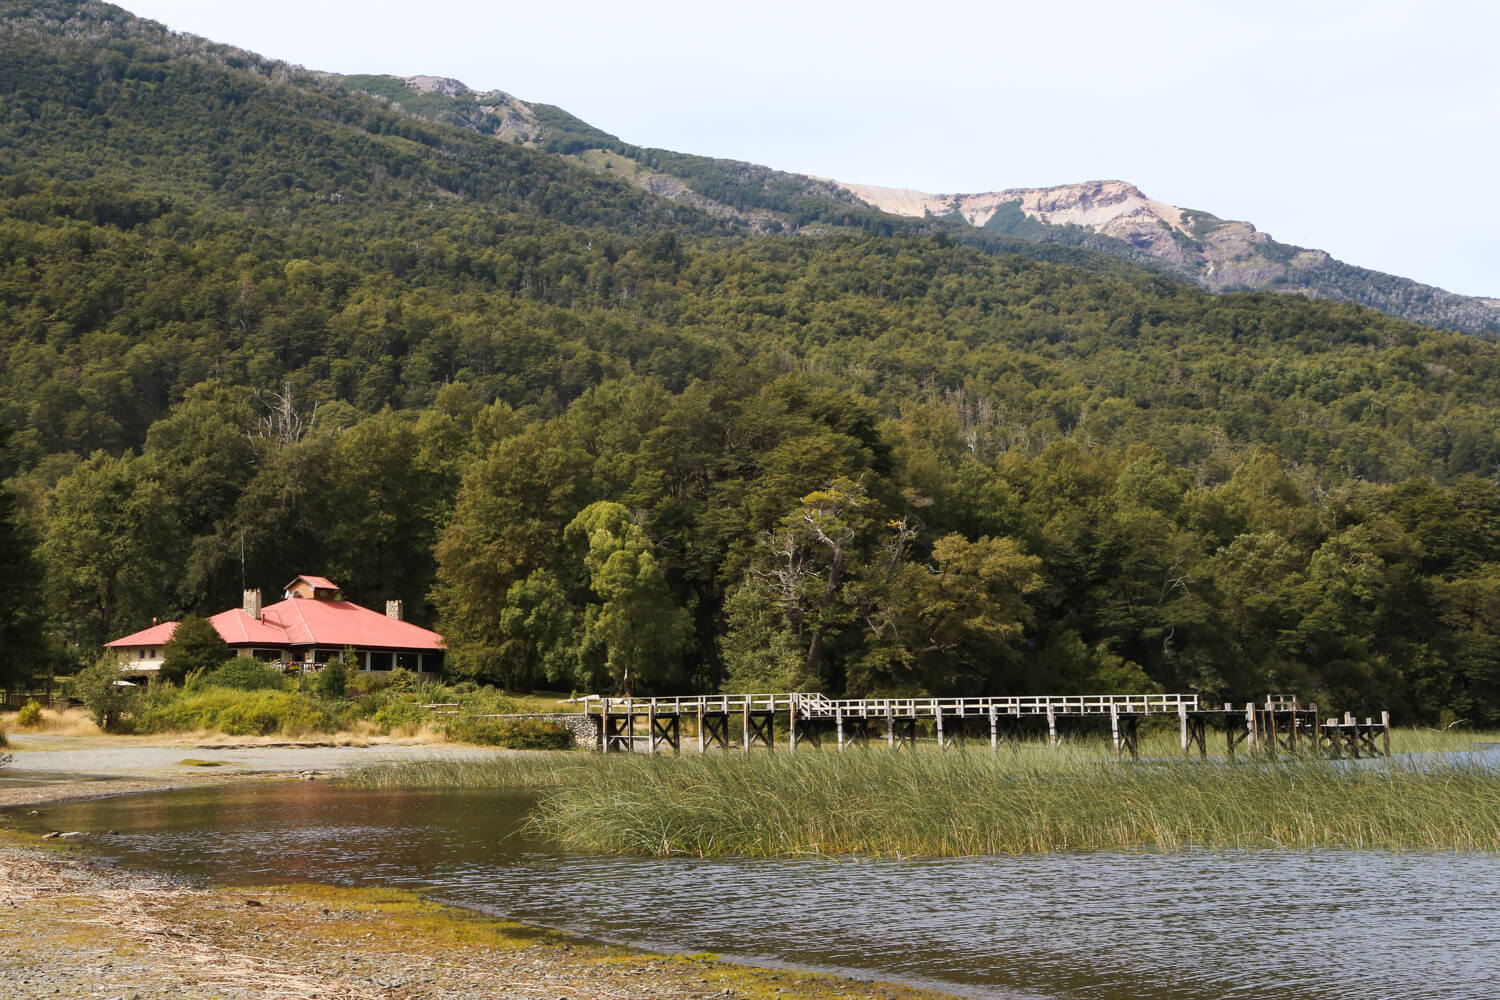 A beach with a wooden pier over the water in san martin de los andes argentina